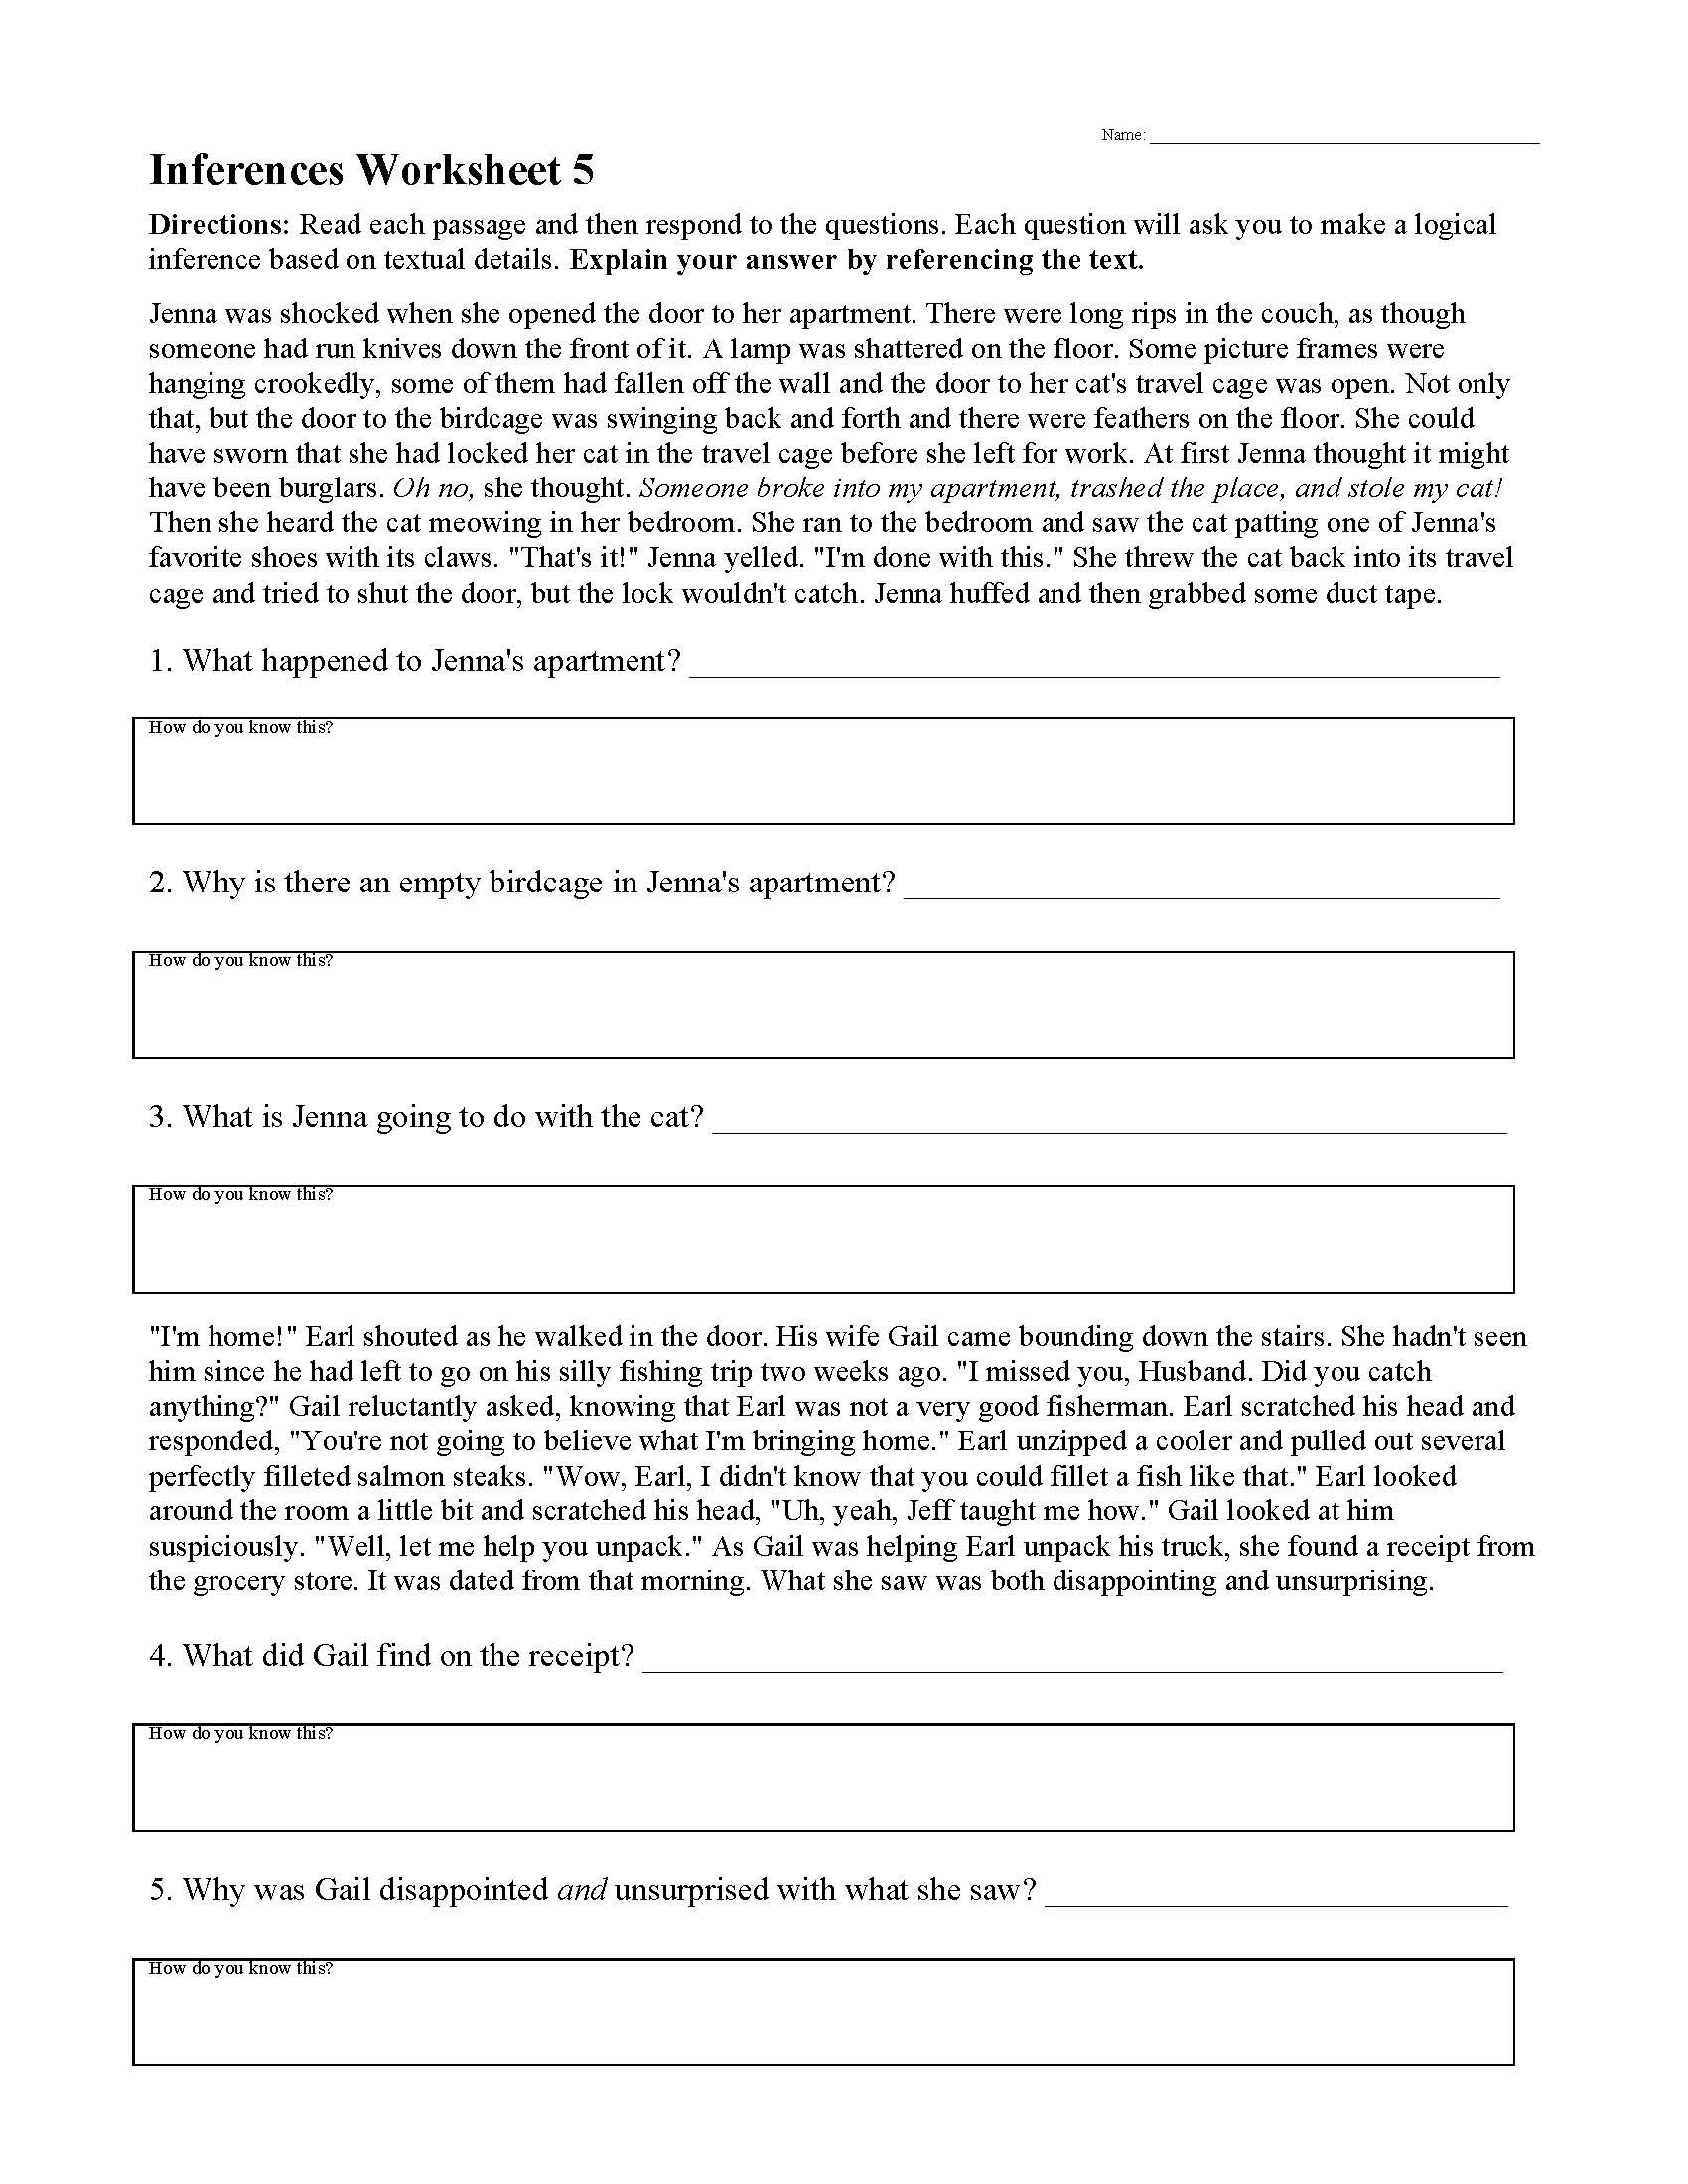 Theme Worksheets Middle School Inferences Worksheets